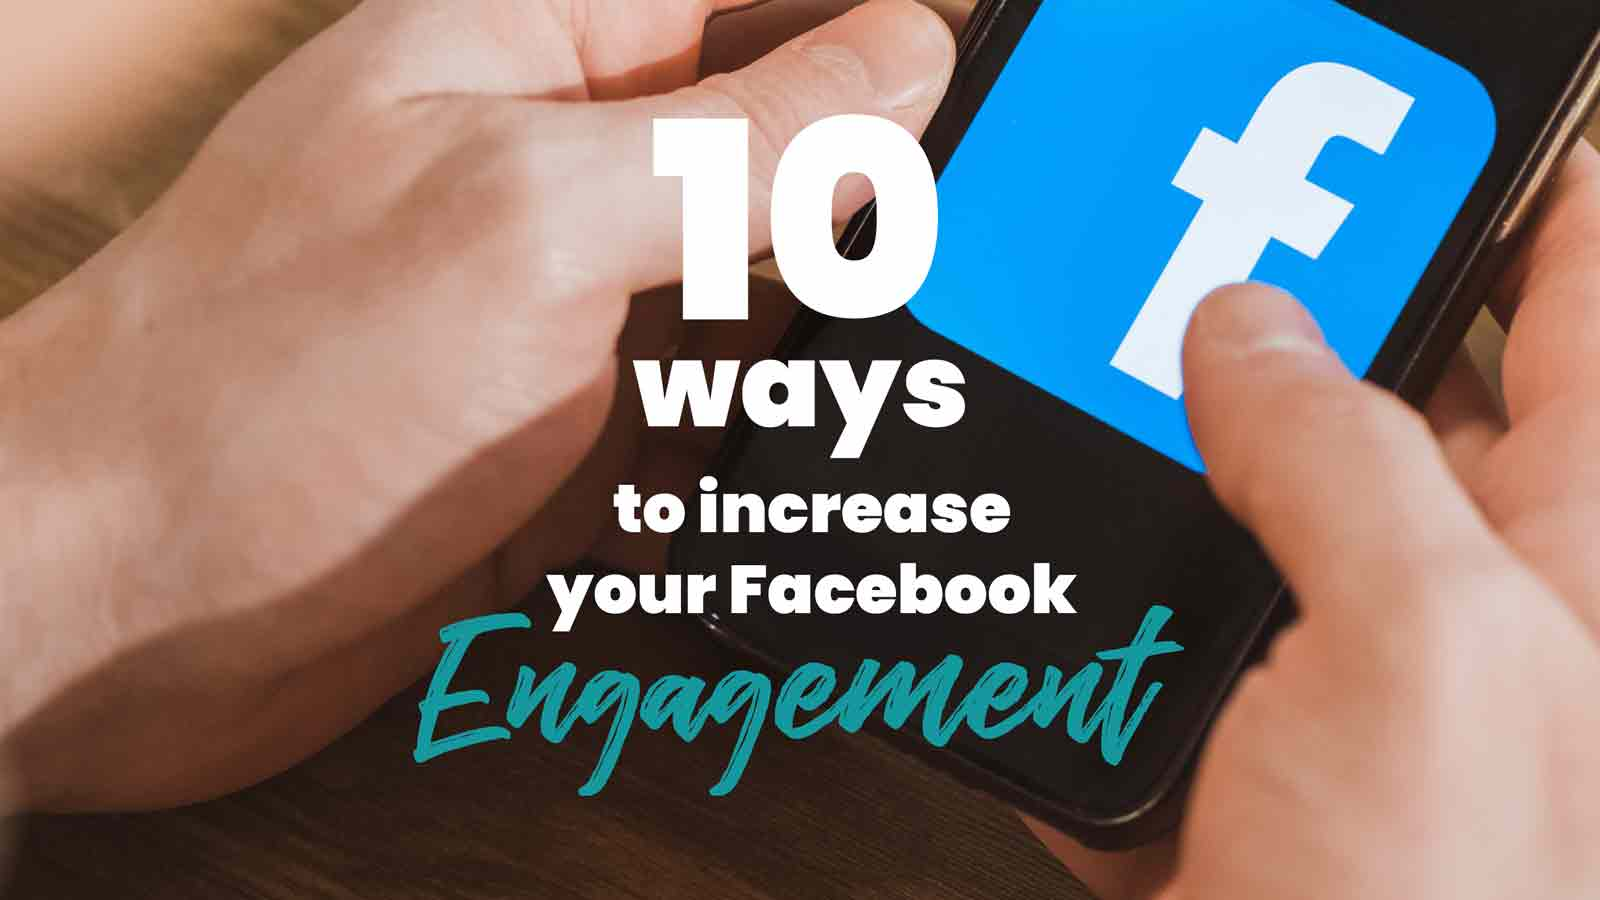 10 Ways to Increase Your Facebook Engagement